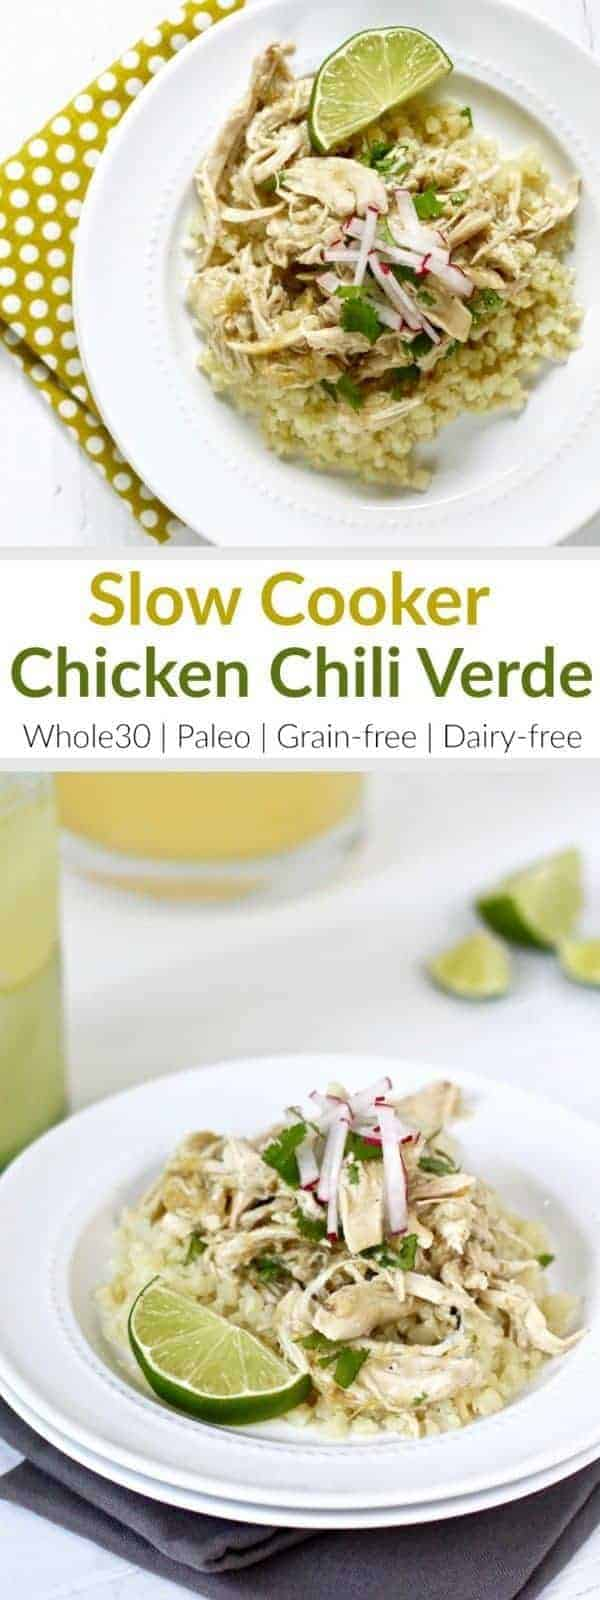 Slow Cooker Chicken Chili Verde | It hardly gets any easier than this recipe with just 5 ingredients! Look for a salsa verde without preservatives or added sugars - we like the Trader Joe's Salsa Verde because it's just tomatillos, green chiles, water, onions, jalapenos, salt and spices. Serve over cauliflower rice or tucked into lettuce wraps | Whole30 | Paleo | Grain-free | Dairy-free | therealfoodrds.com